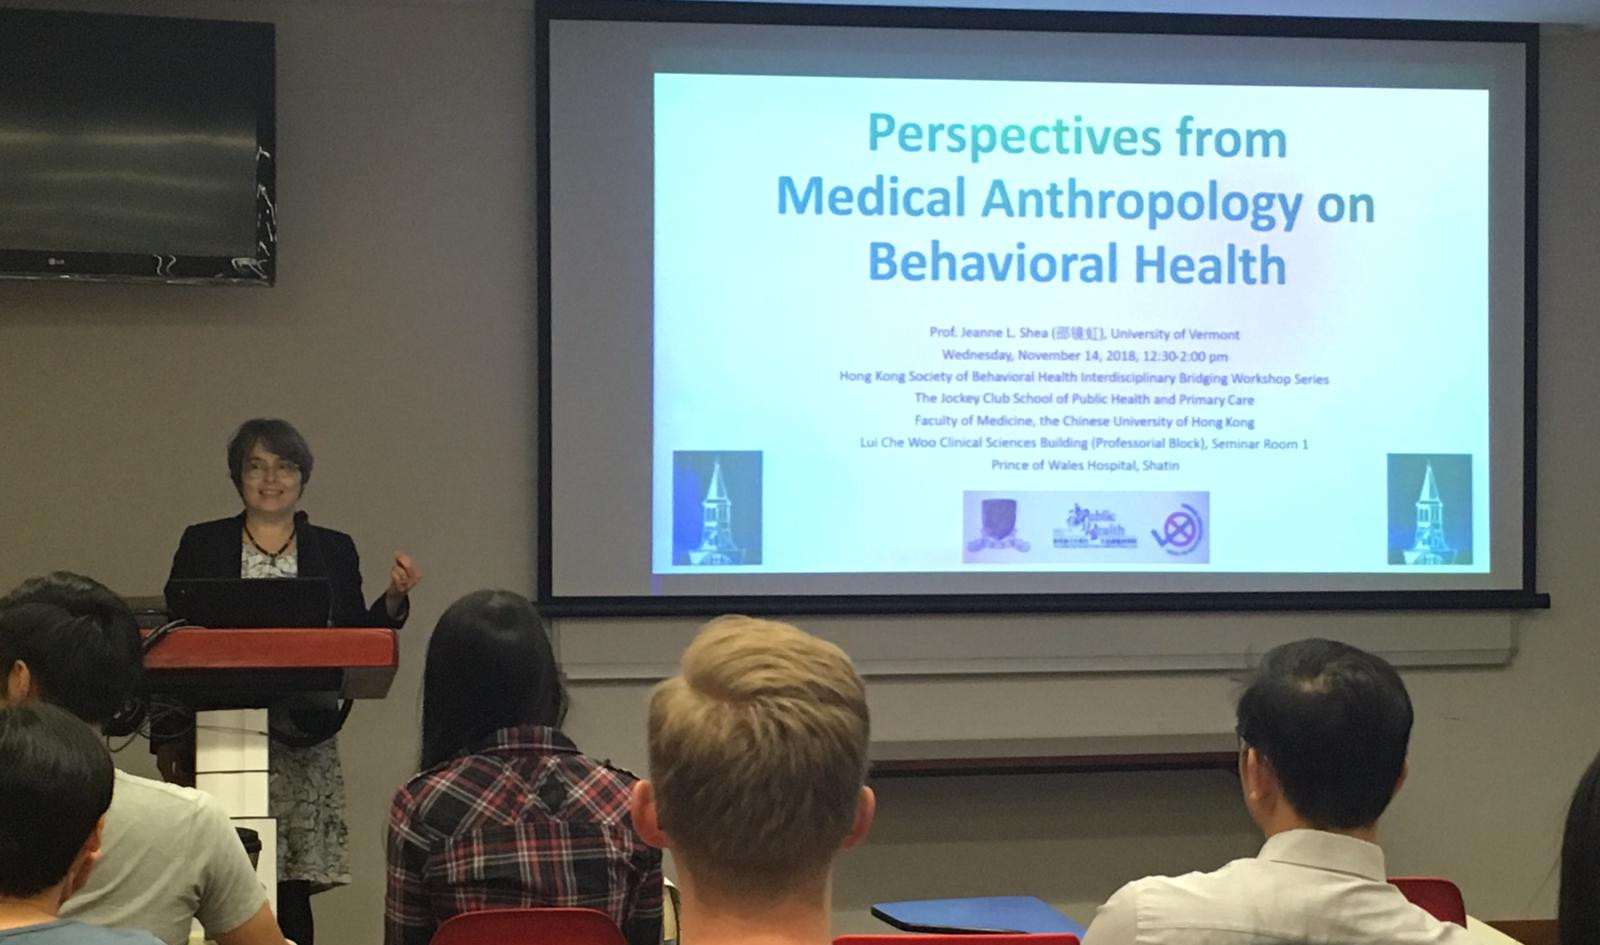 Perspectives from Medical Anthropology on Behavioral Health